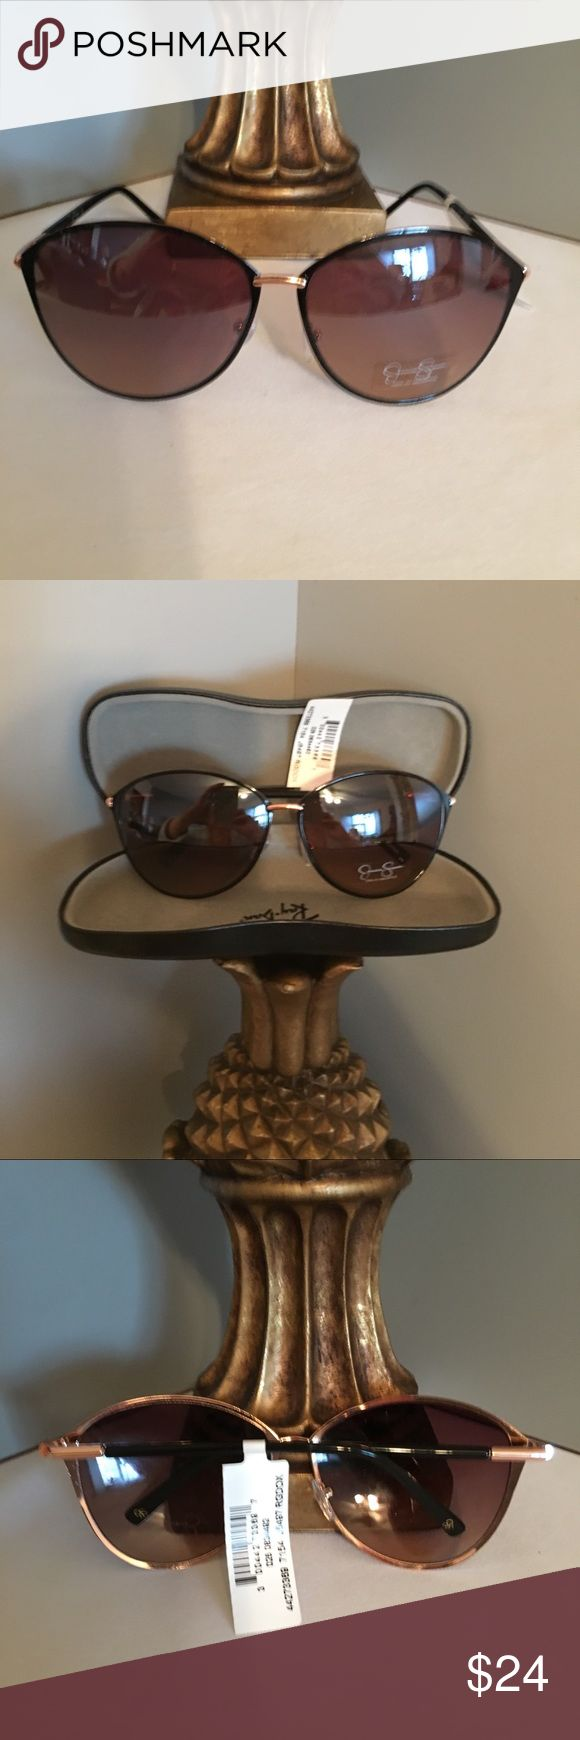 BRAND NEW-JESSICA SIMPSON SUNGLASSES.VERY STYLISH BRAND NEW-JESSICA SIMPSON CUTE AND STYLISH SUNGLASSES. THIS STYLE LOOKS GOOD ON EVERYONE. NO SCRATCHES. YOU ARE GOING TO LOVE THESE. Jessica Simpson Accessories Sunglasses